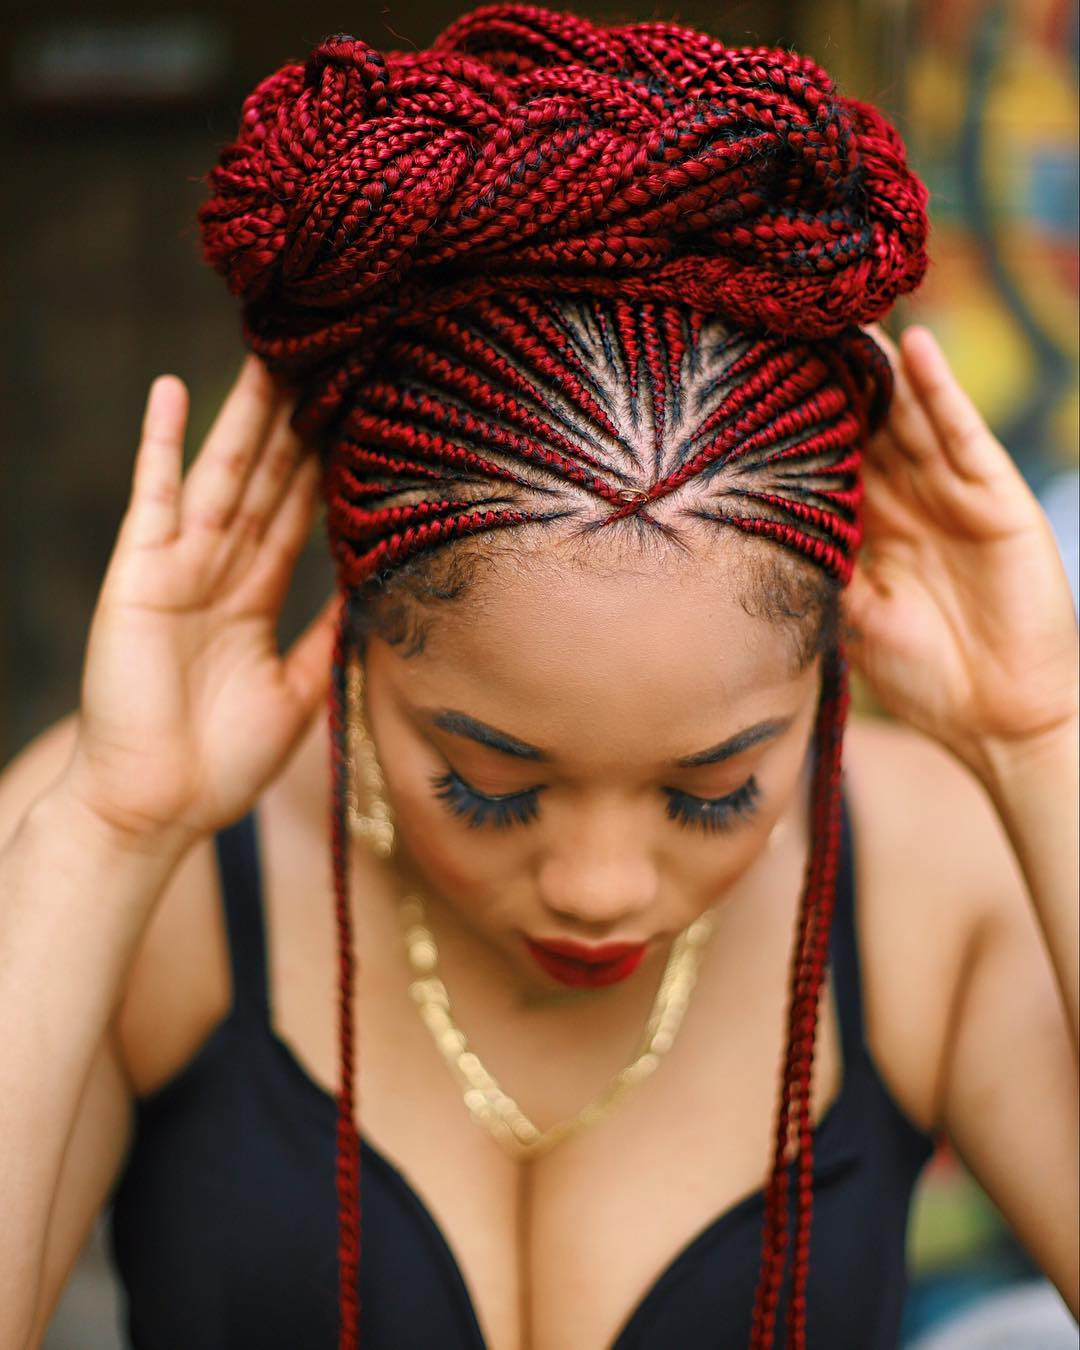 you'll guide an appointment with your hairdresser after seeing these ghana weaving hairstyles You'll Guide An Appointment With Your Hairdresser After Seeing These Ghana Weaving Hairstyles Ghana Weaving Hairstyles 2019